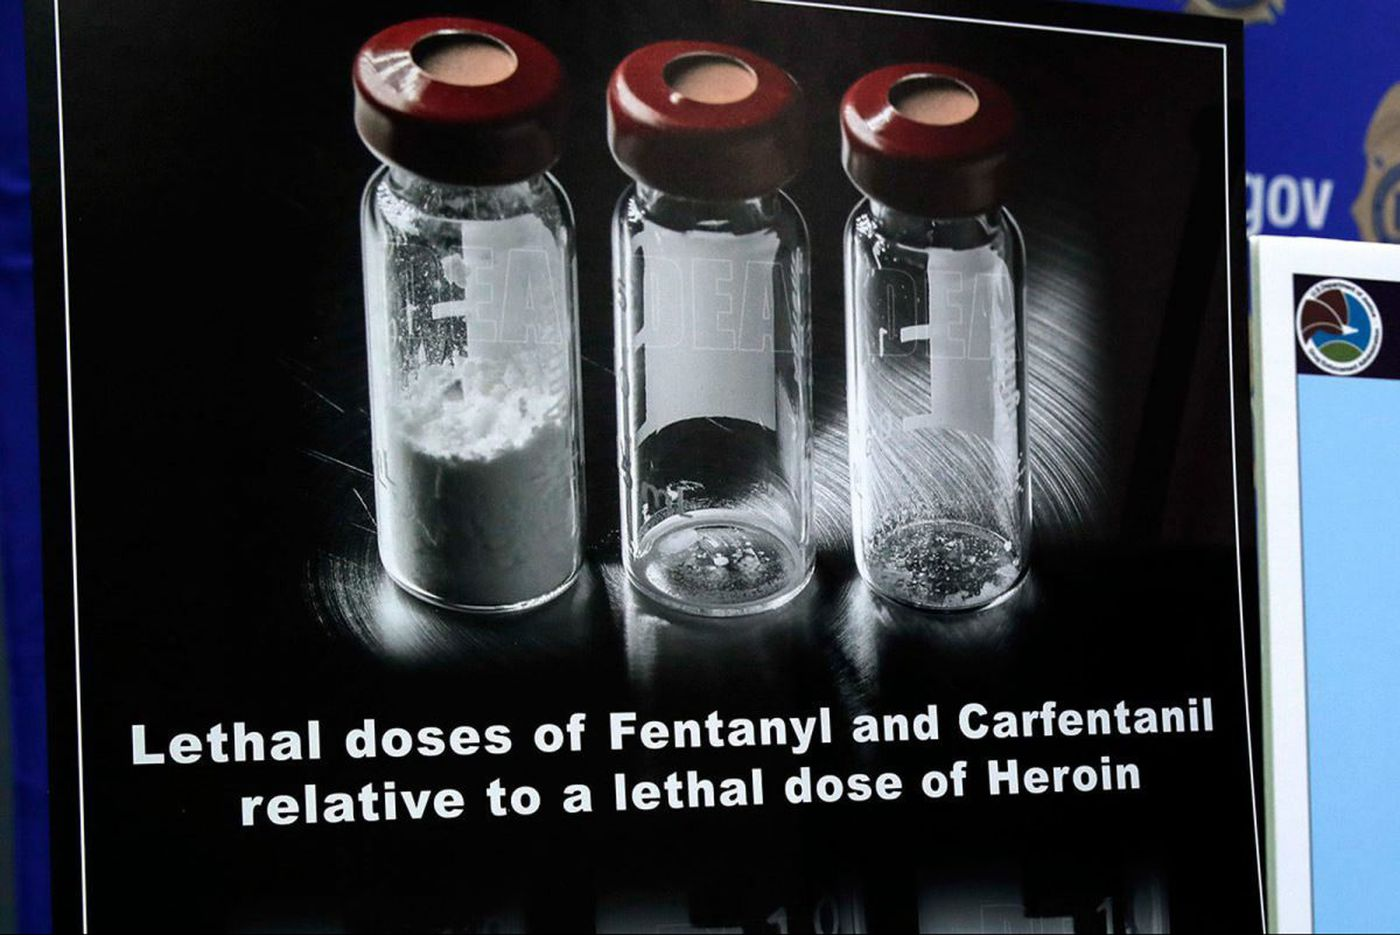 Two men die of carfentanil overdoses in Montco